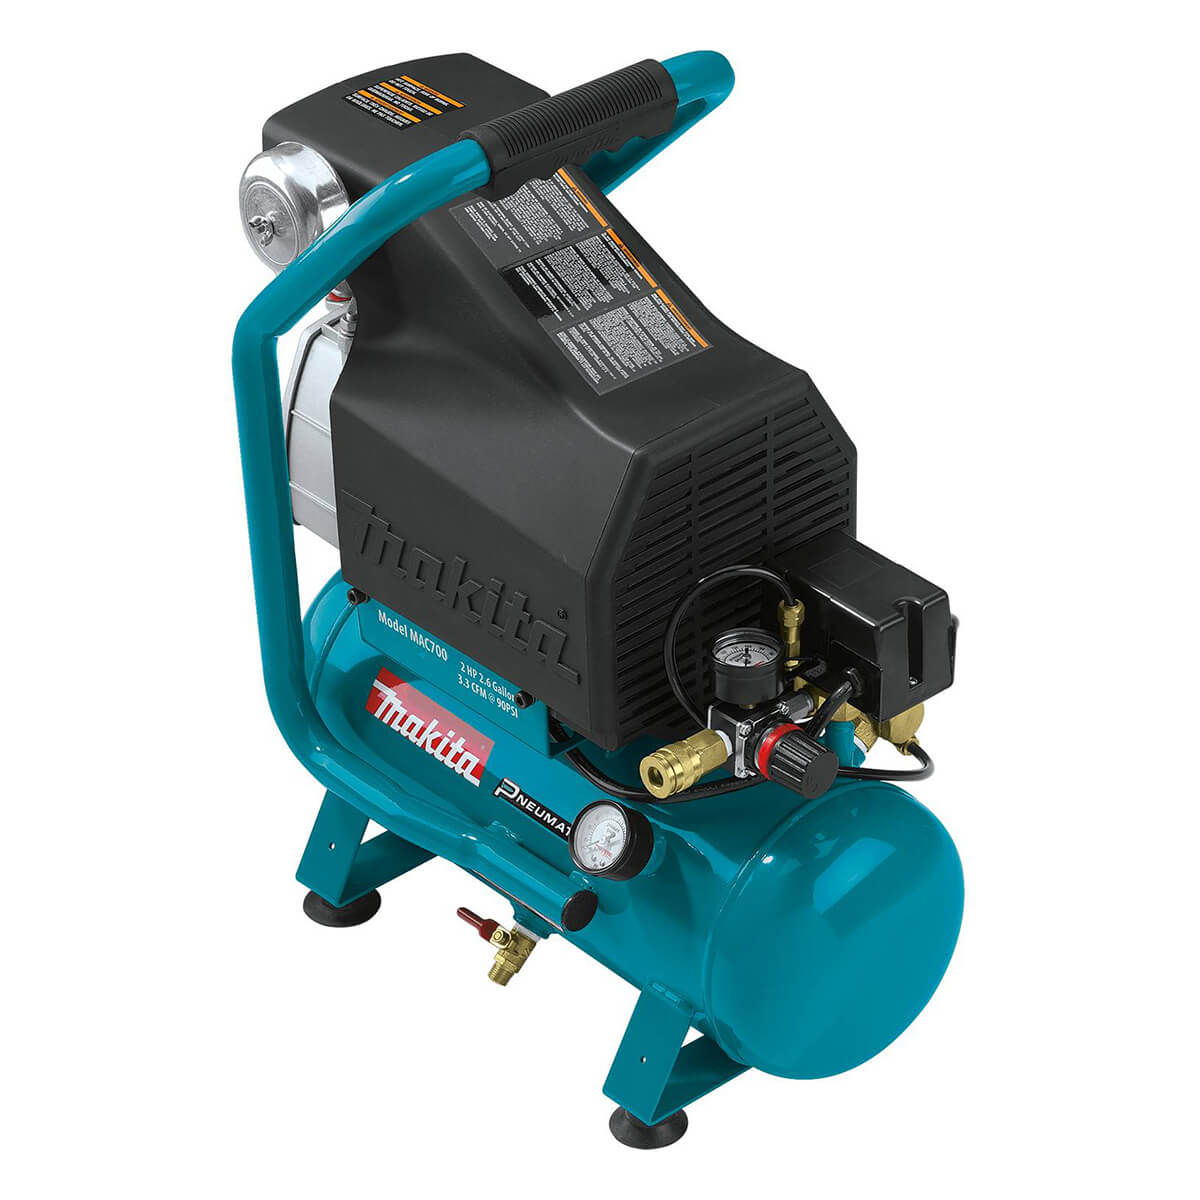 Makita MAC700 Big Bore Air Compressor - 2.0 hp